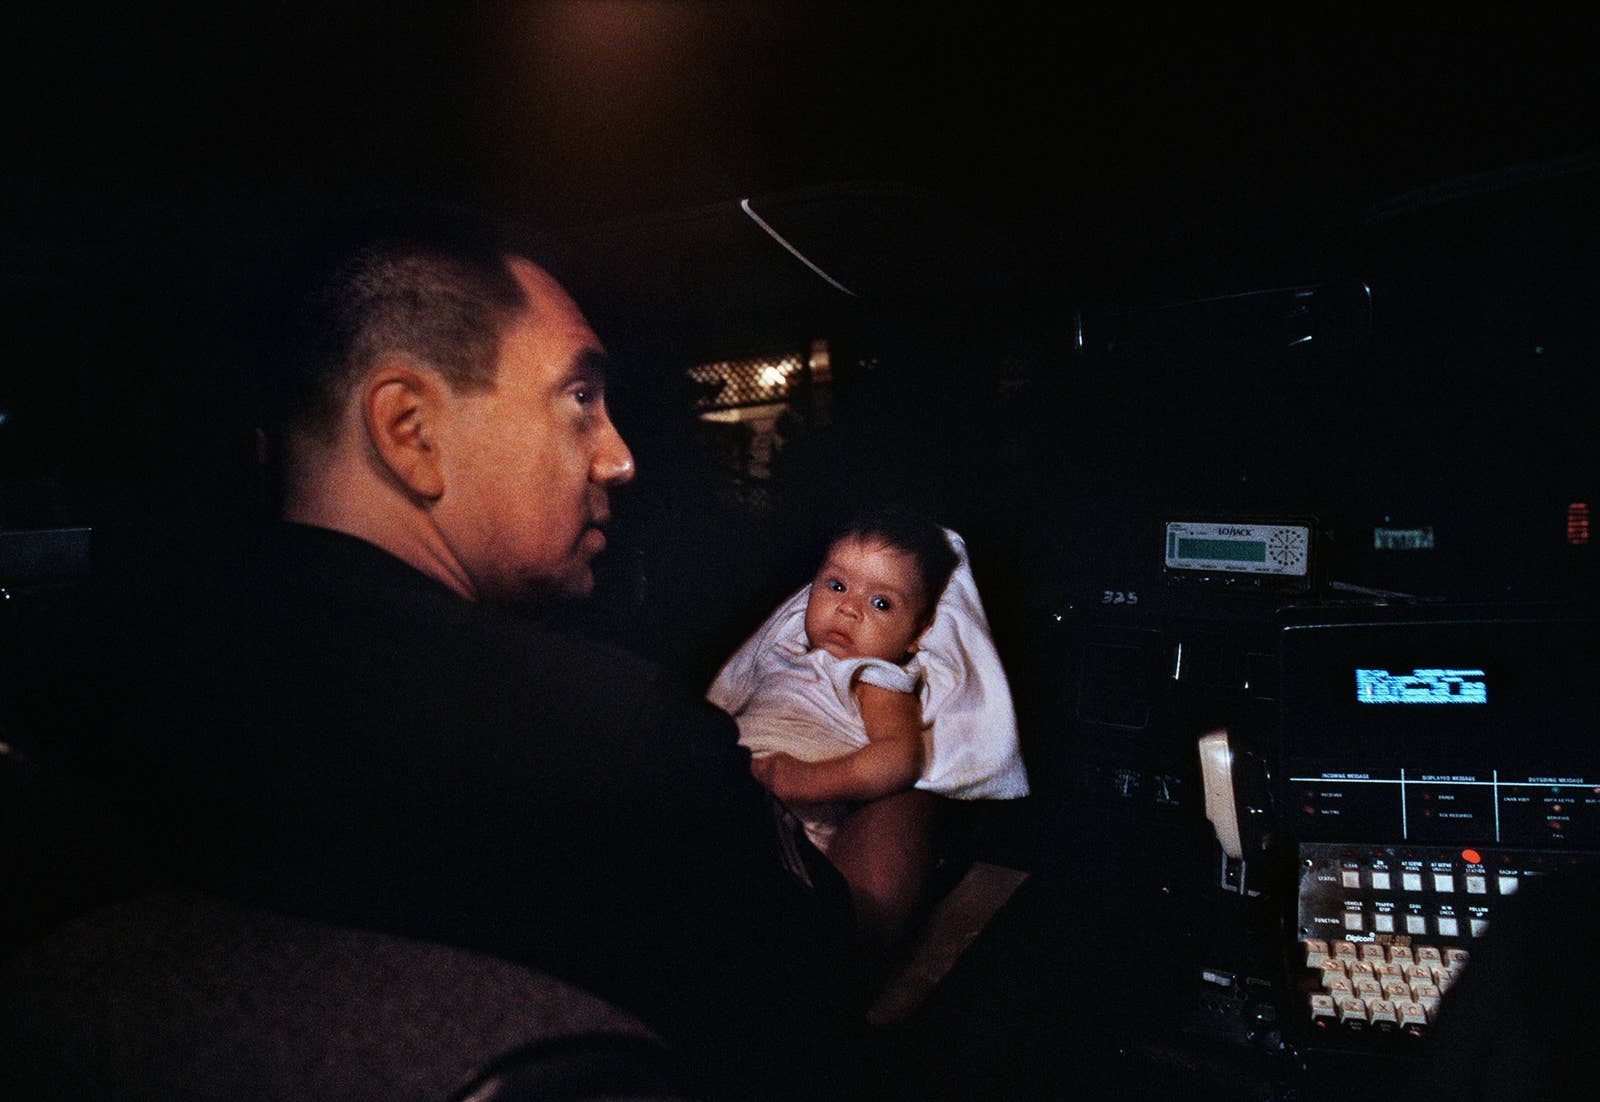 A cop holds a baby in a car at night